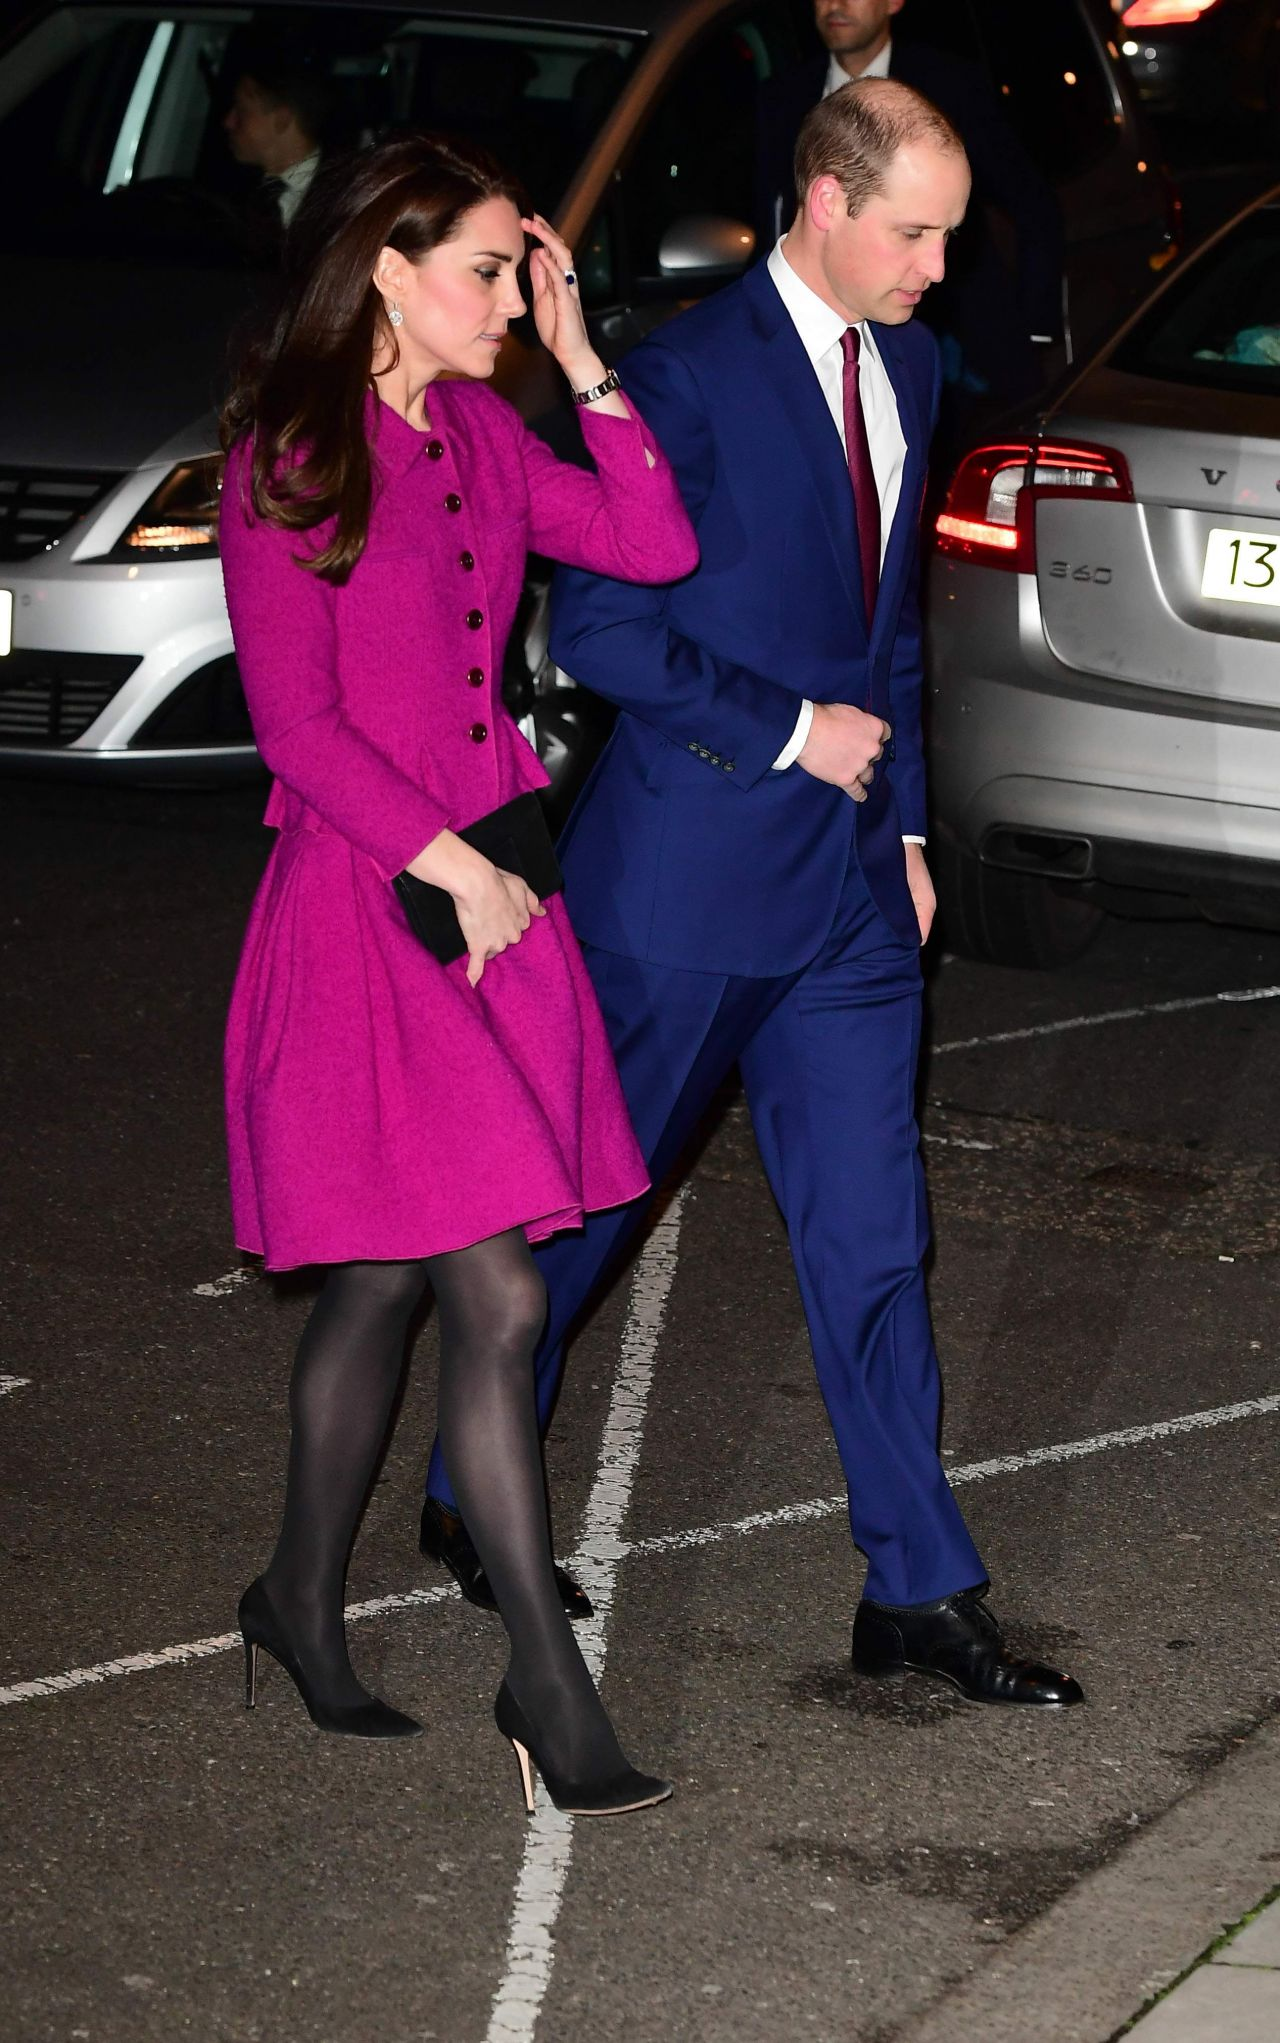 Kate Middleton Arriving At Chandos House In London 2 6 2017